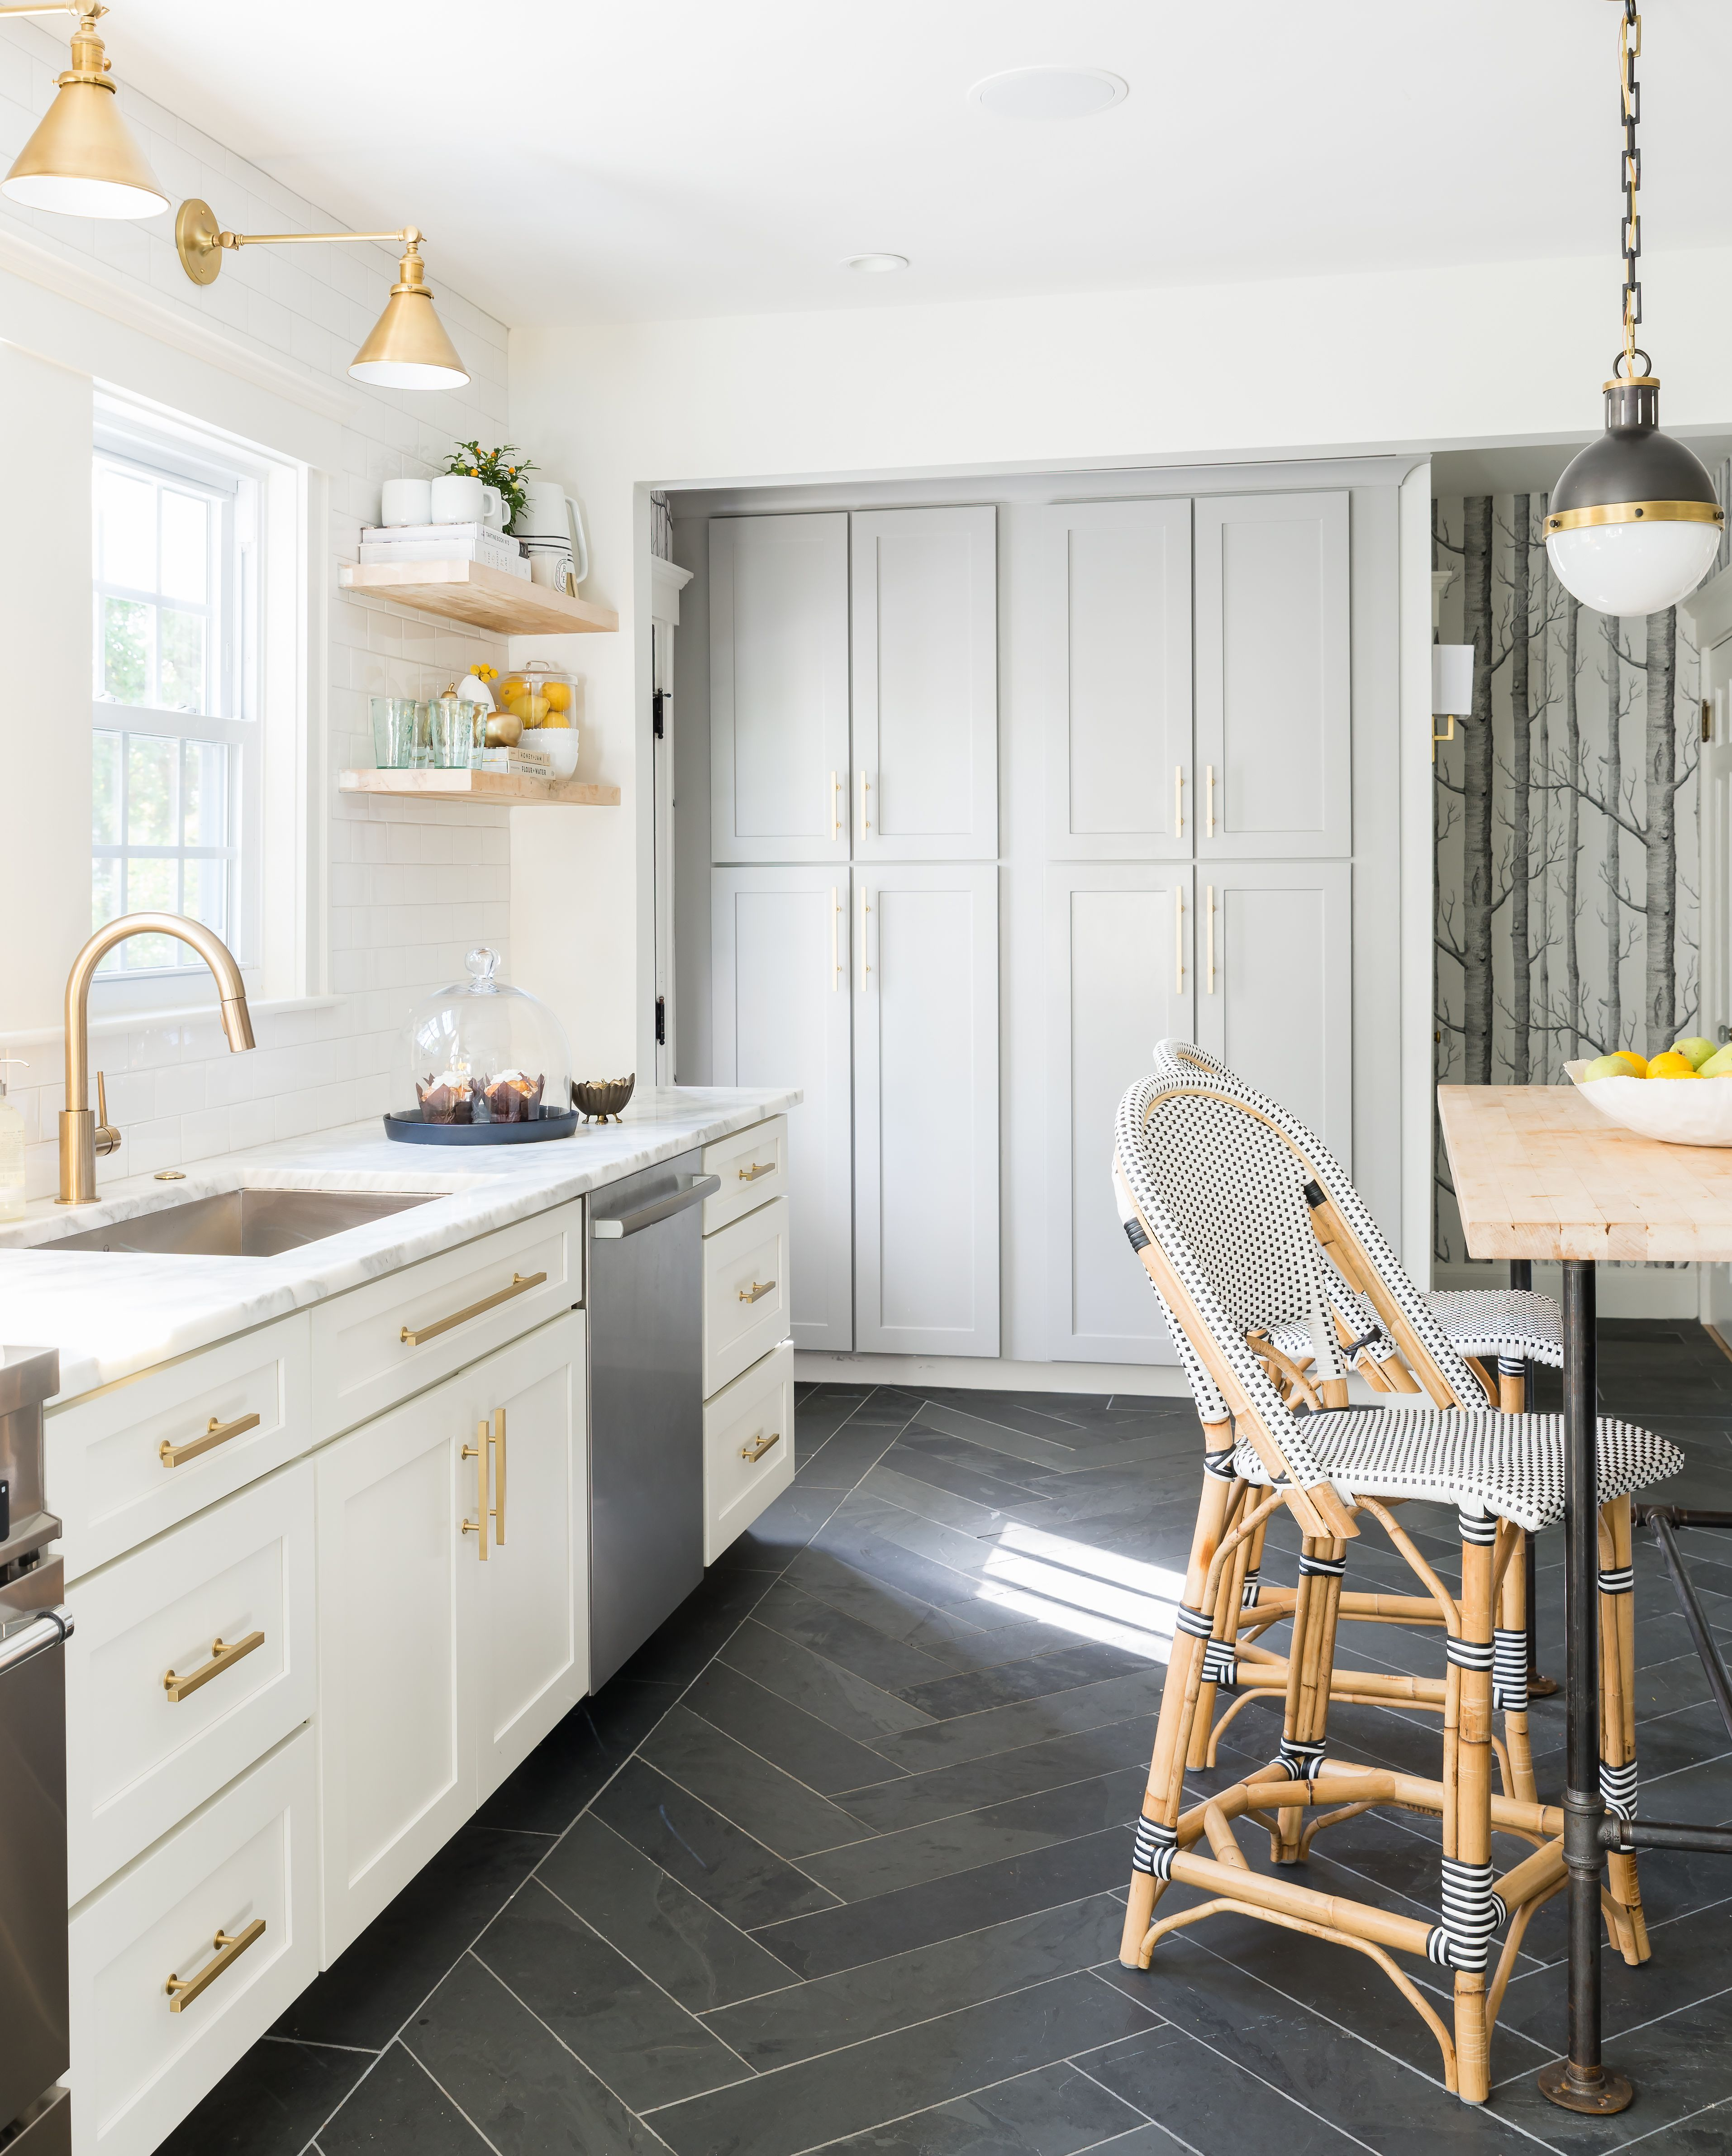 White grey brass kitchen with herringbone tile floor